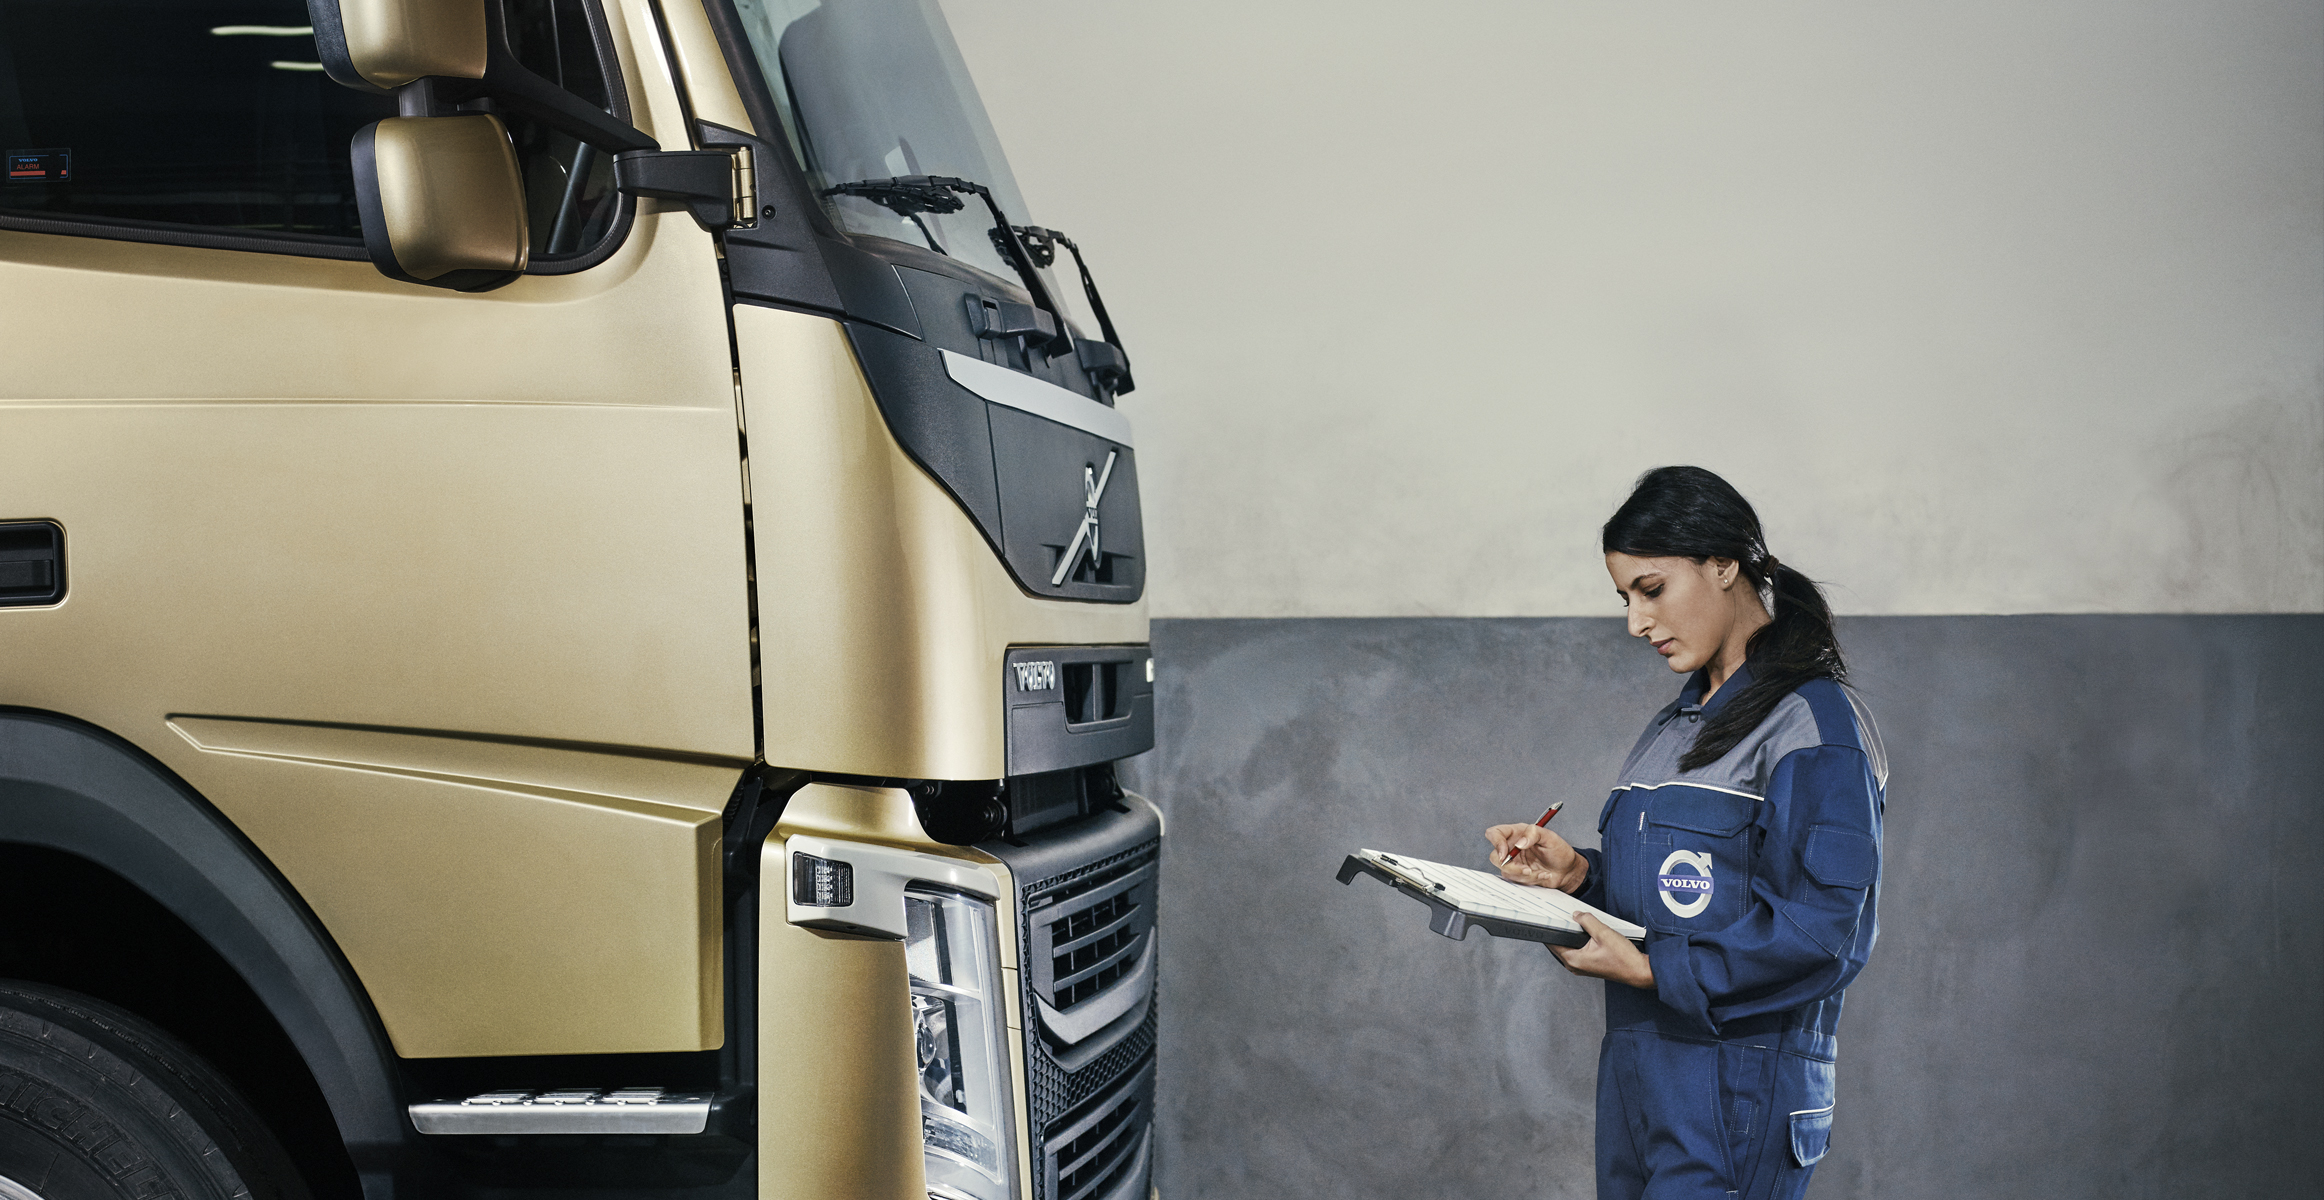 sheptonmalletvolvoweb volvo photos dealers trucks commercial